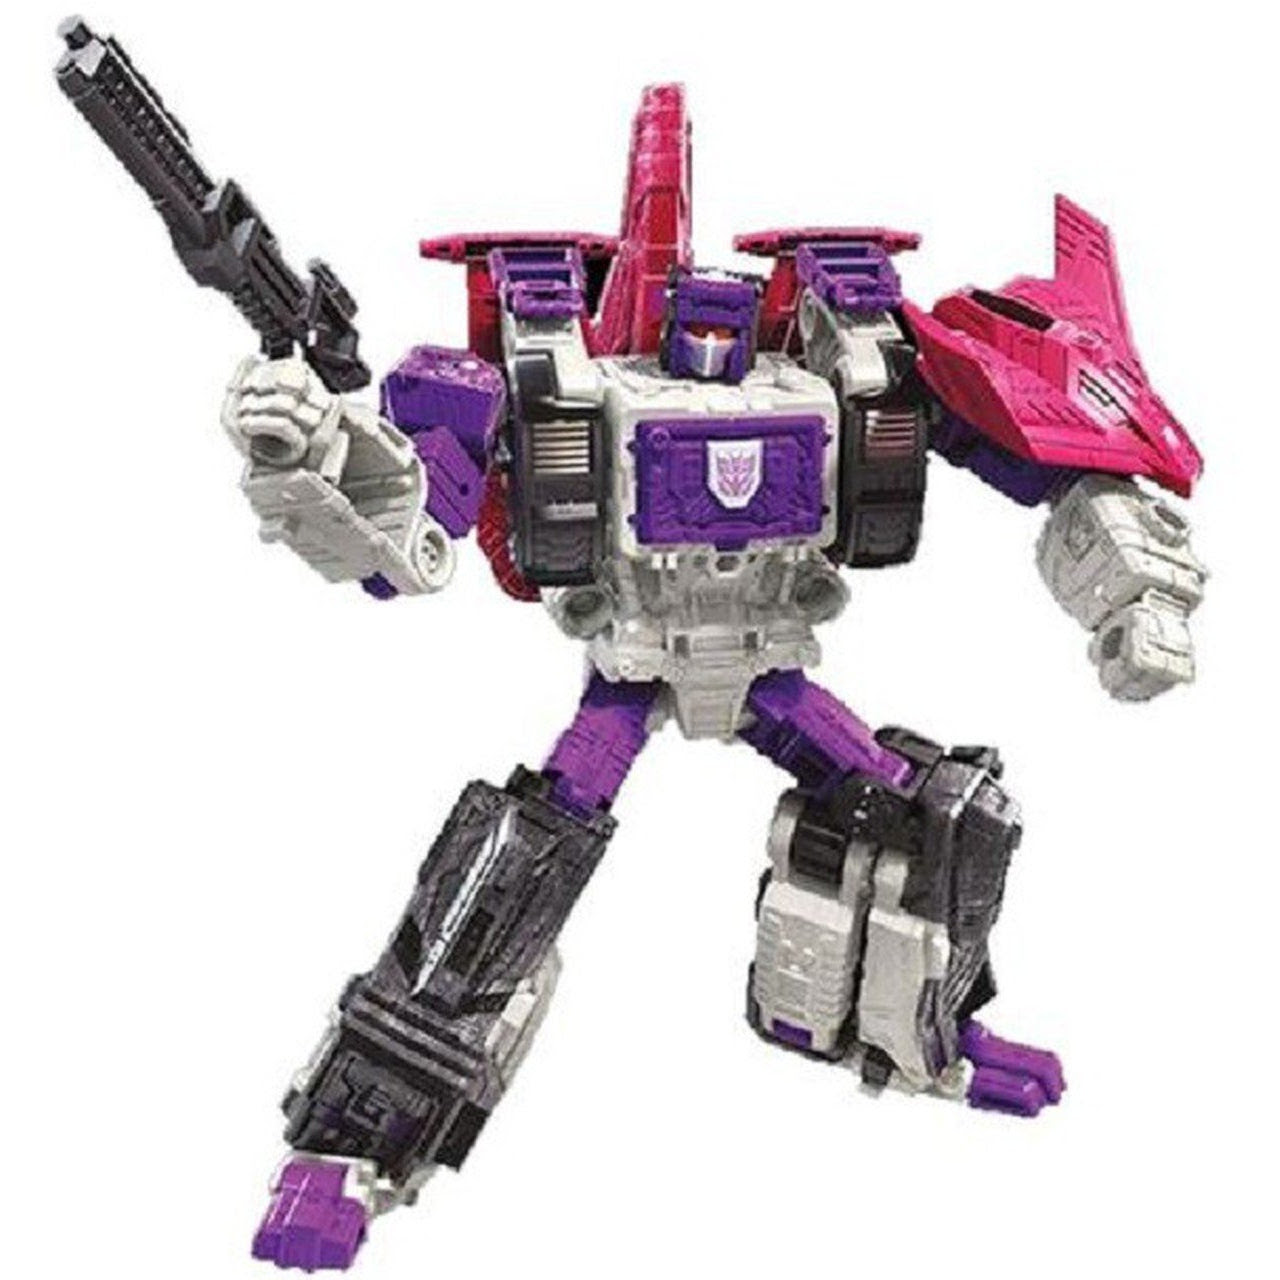 Image of Transformers Generations War for Cybertron: Siege Voyager Apeface